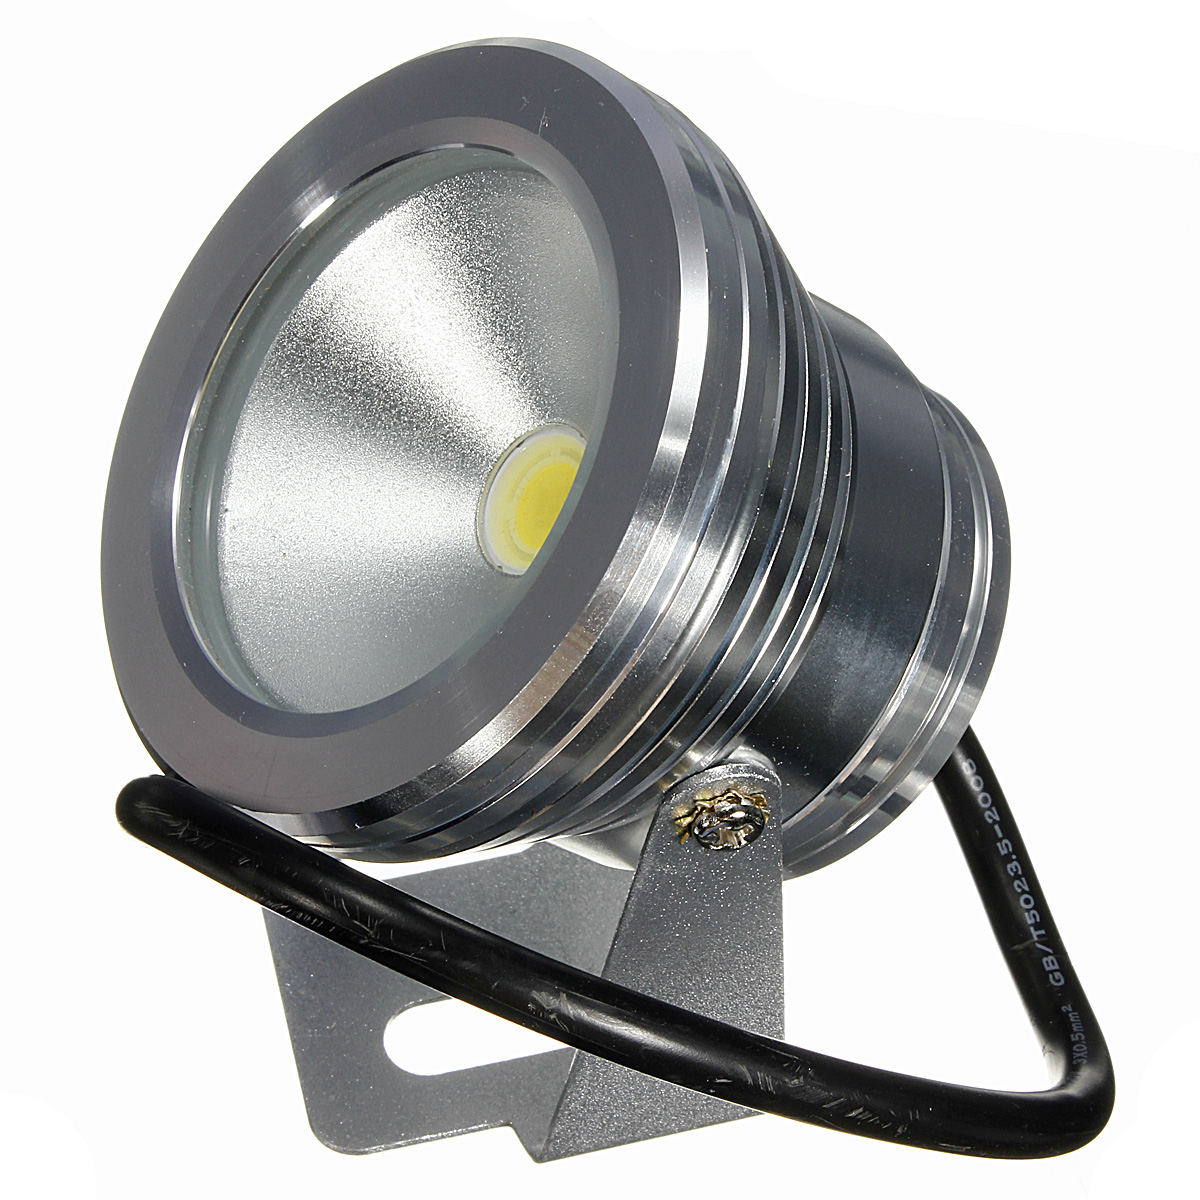 Jiguoor 10W LED Swimming Pool Light Underwater Waterproof IP67 Landscape Lamp Warm/Cool White AC/DC 12V 800 - 900lm